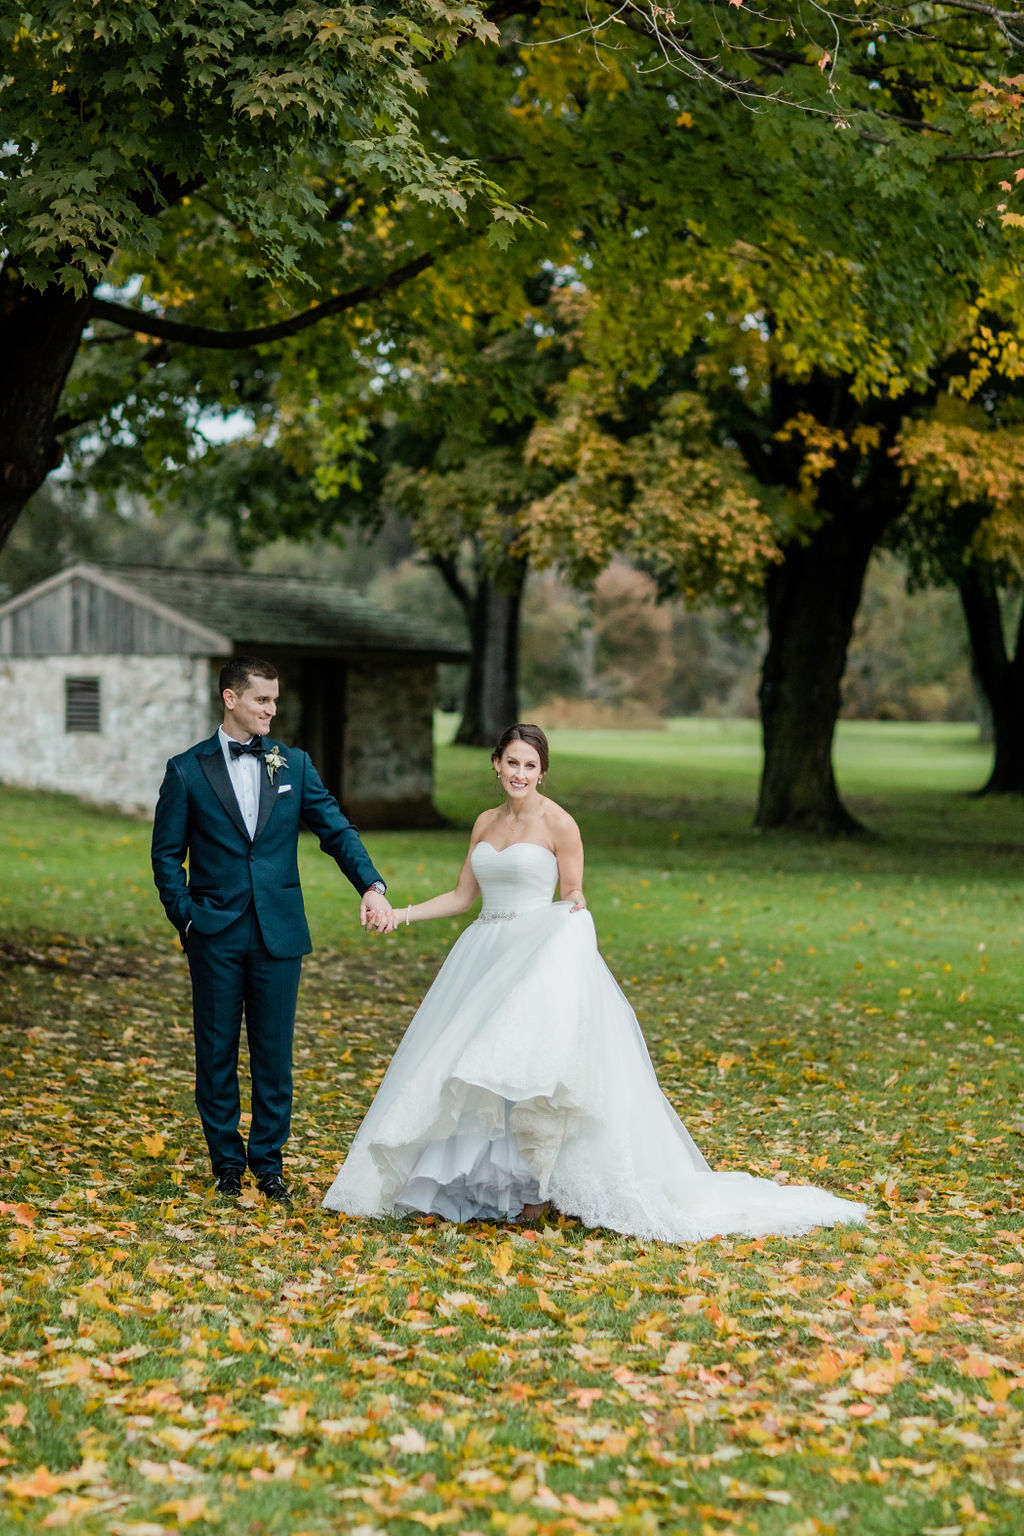 Katie&Brian_Wedding__JenHarveyPhotography-686.jpg